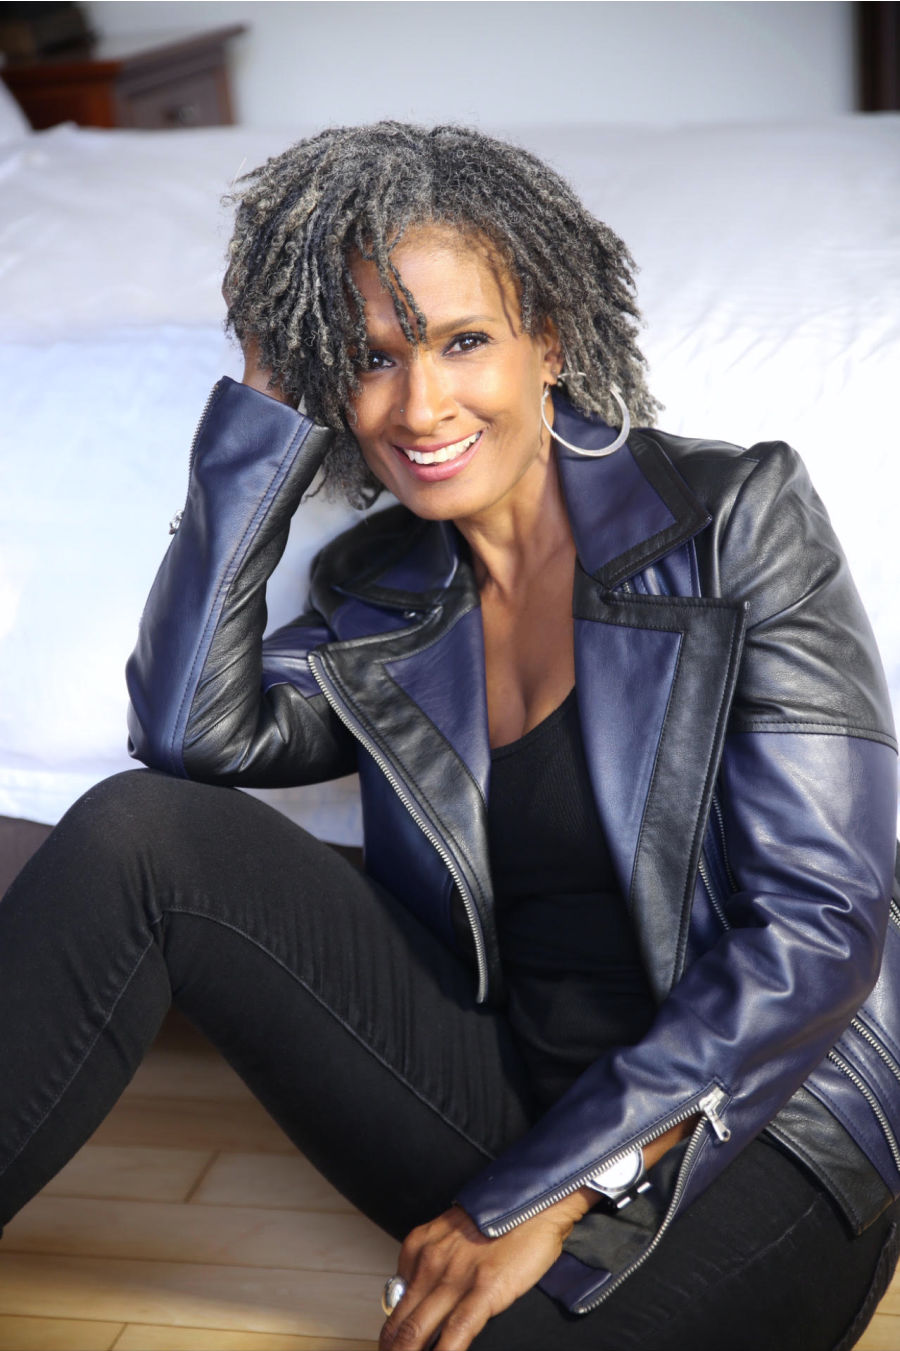 Carla Kemp was a model in her teens, took an extended break, and then came back to modeling in her 50s. She embraces her natural hair and owns her power.